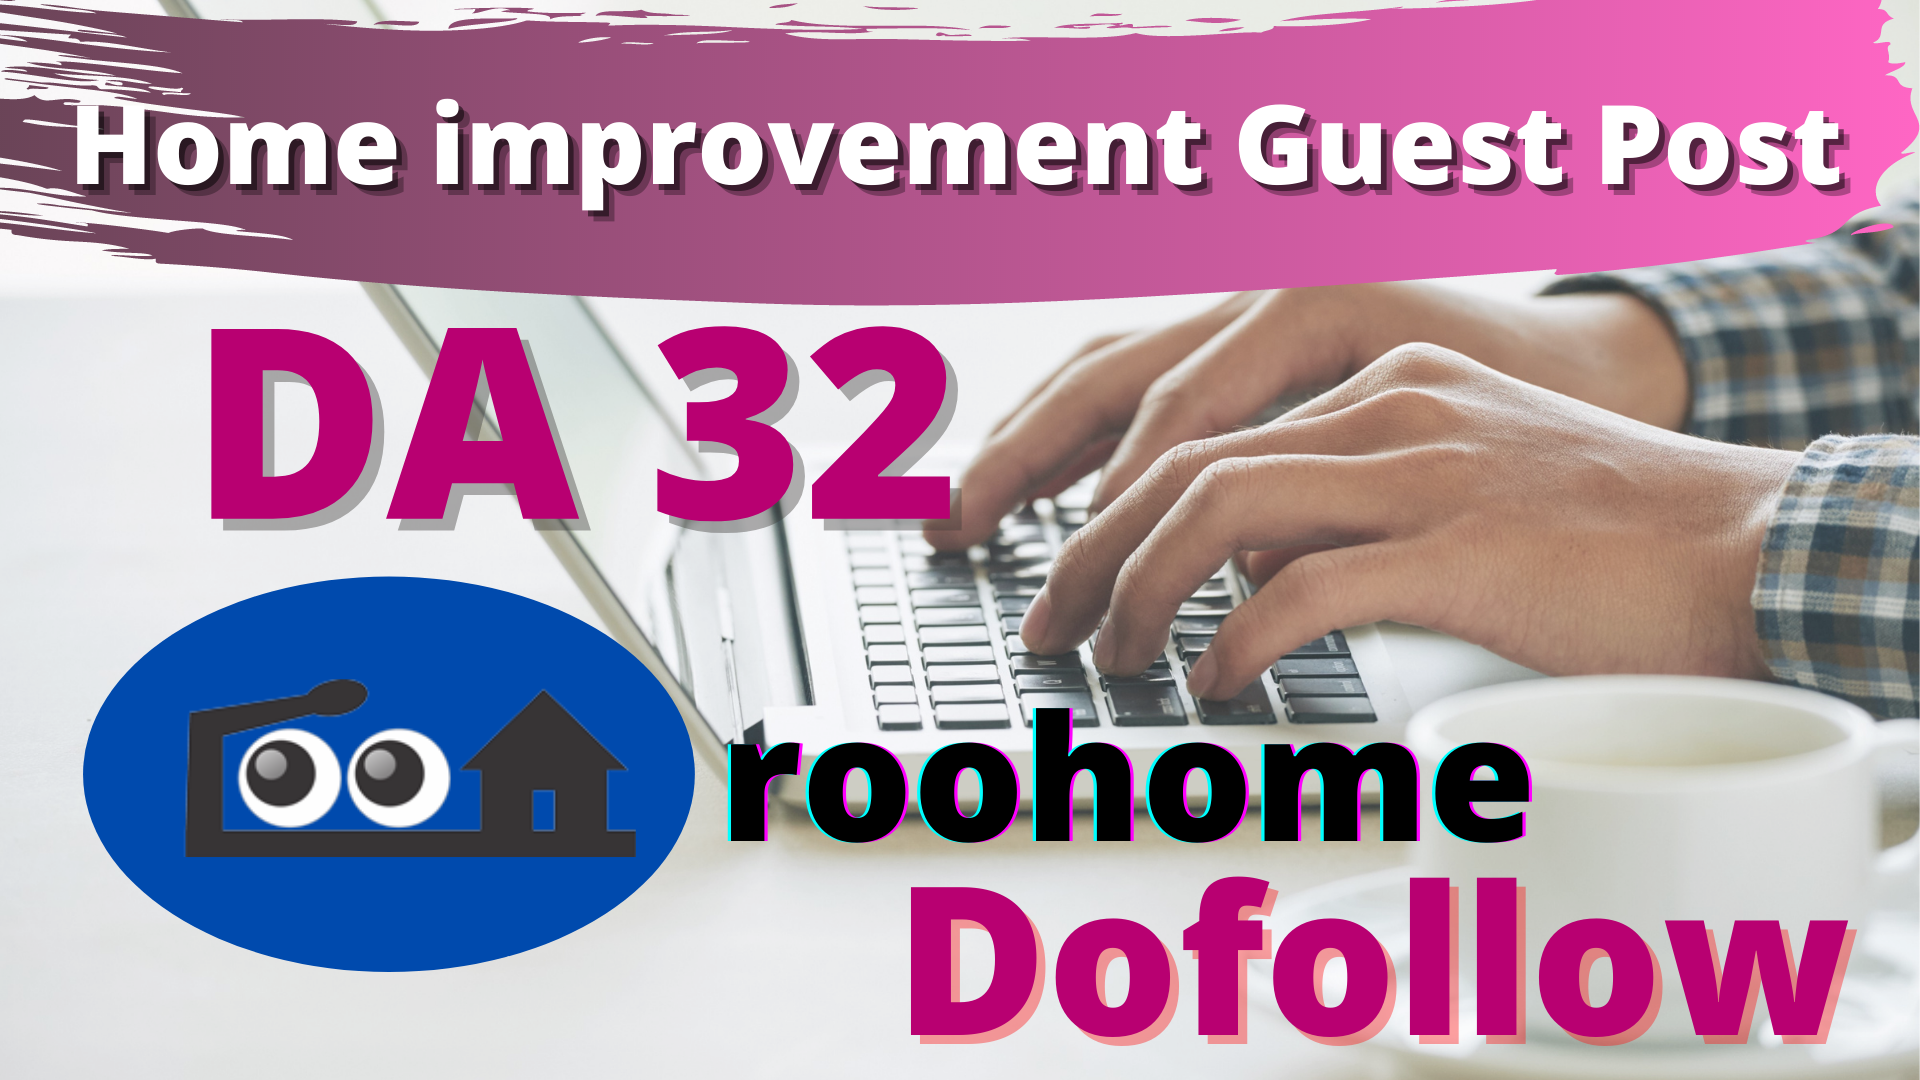 Guest Post on Home improvement website roohome. com DA 32